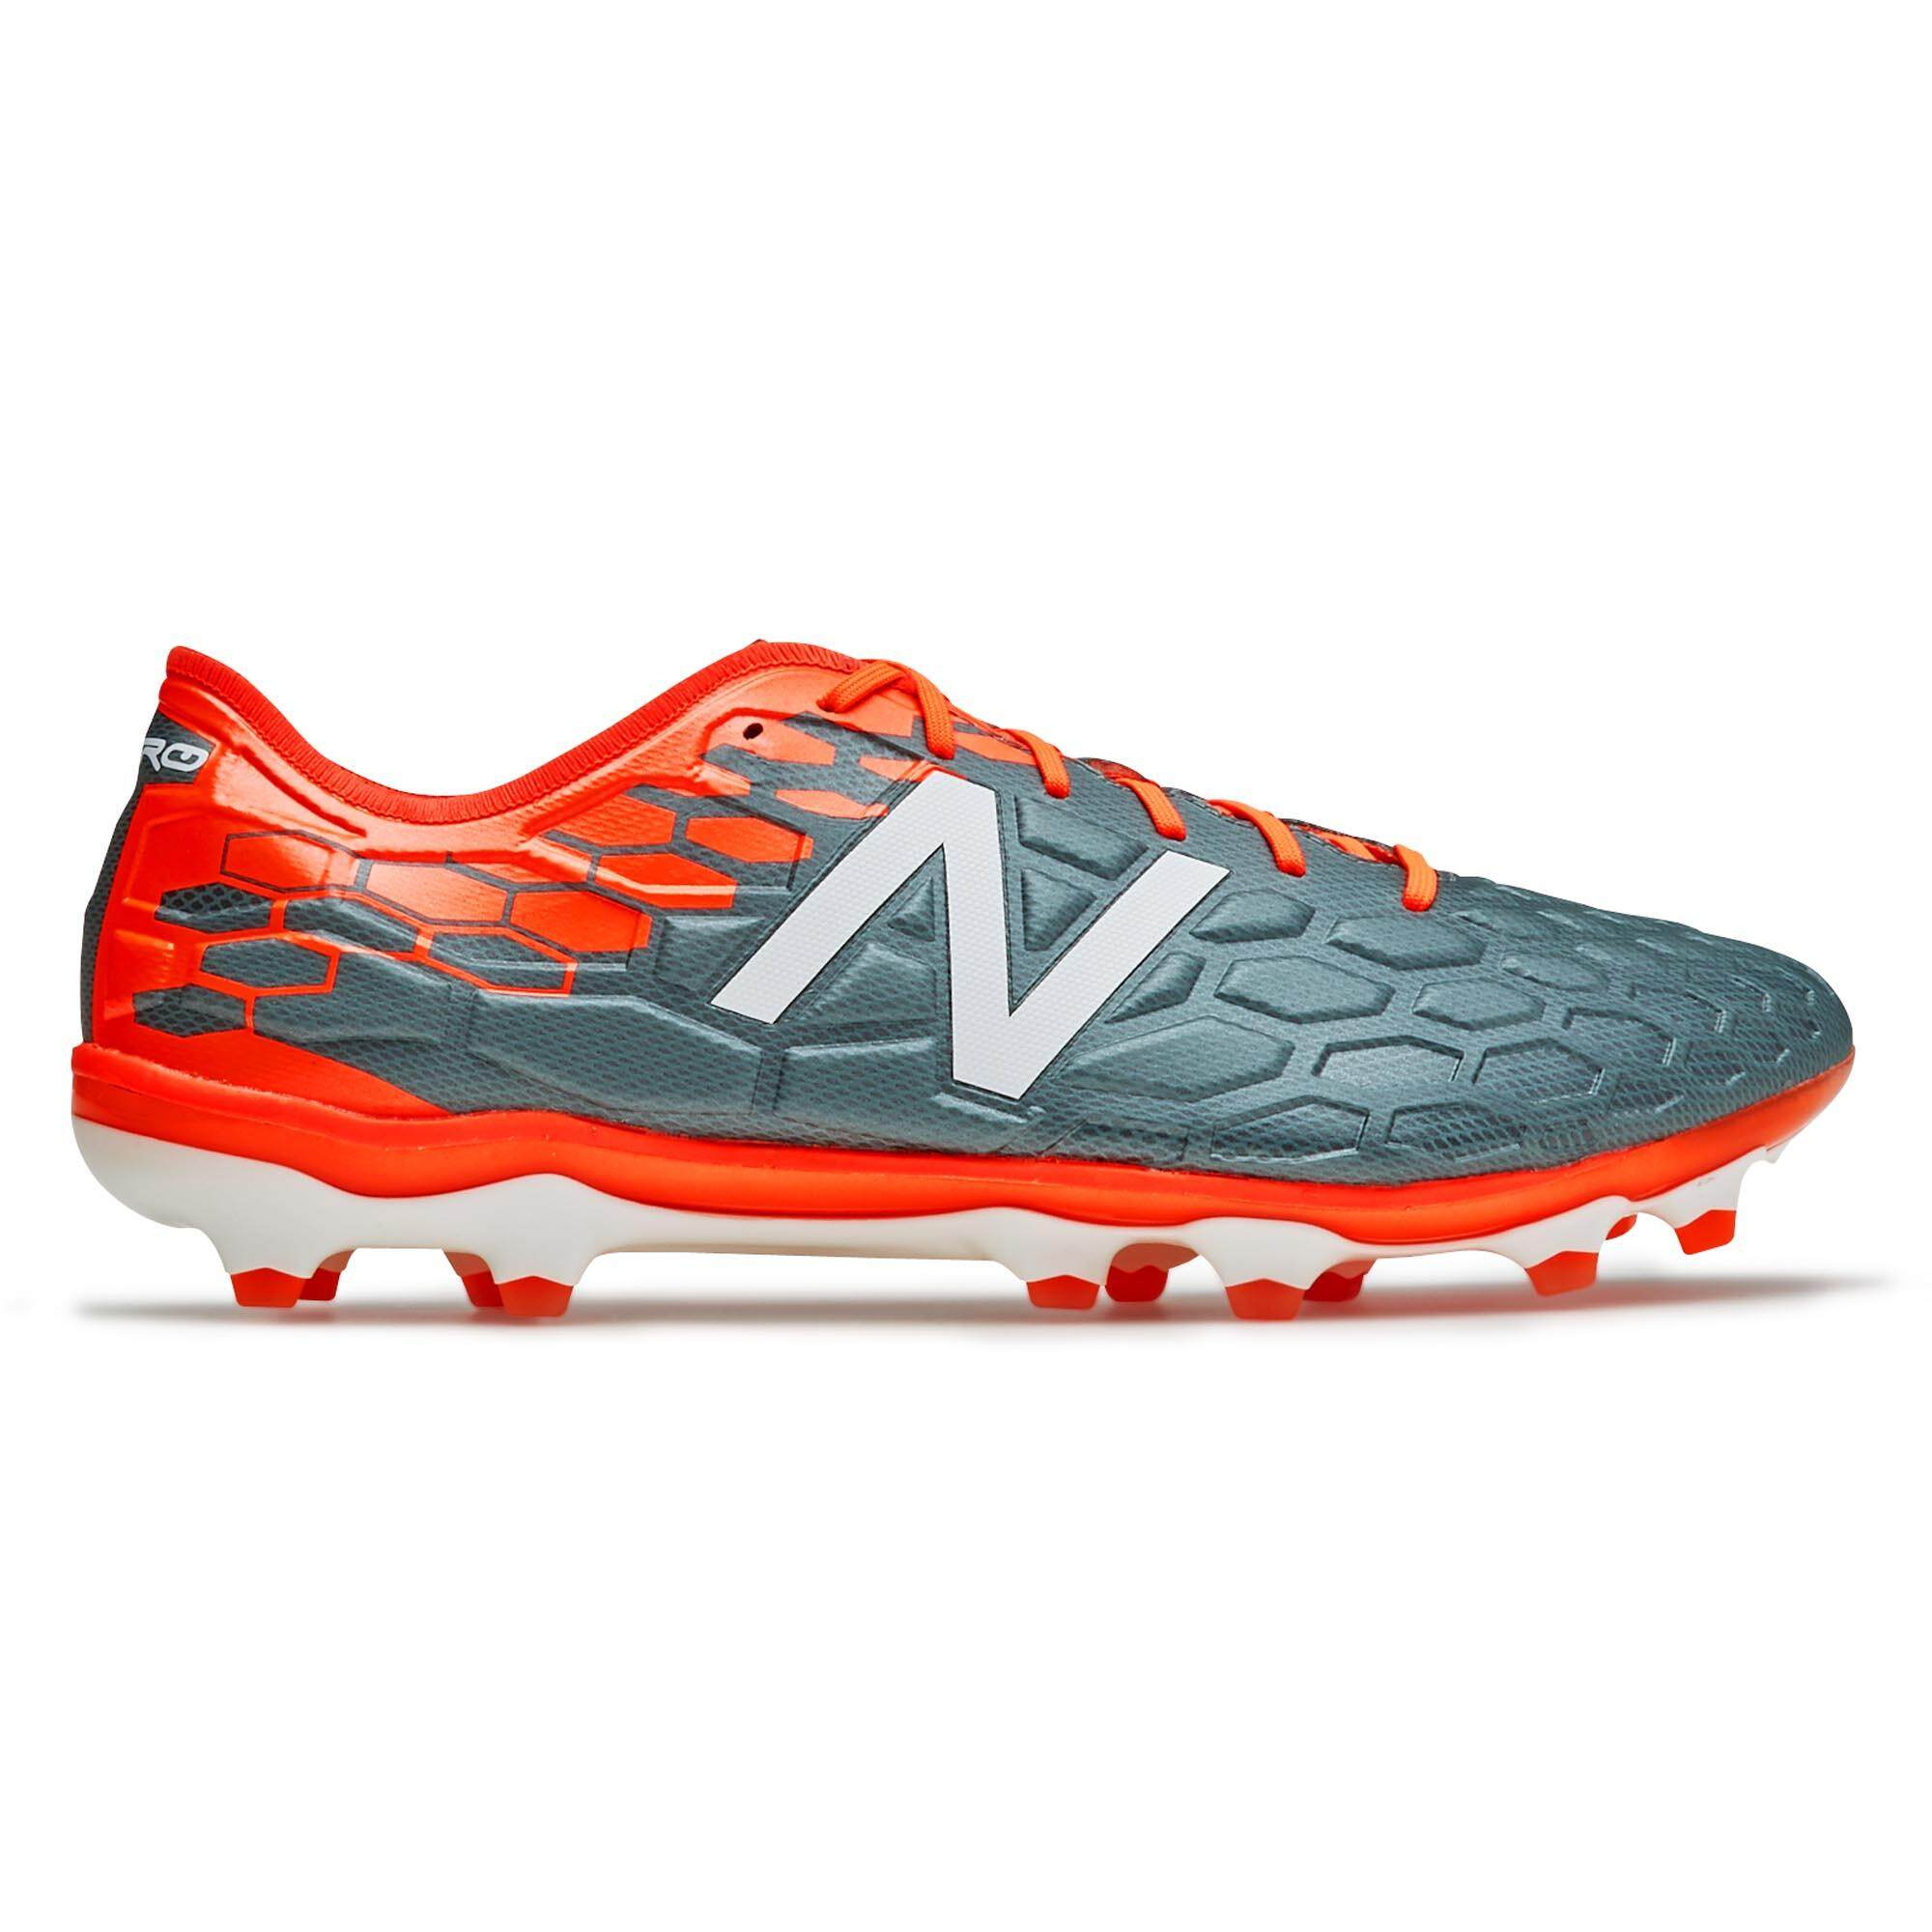 New Balance Official Store - Buy New Balance Official Store at Best ... 6b88aa9c5b3